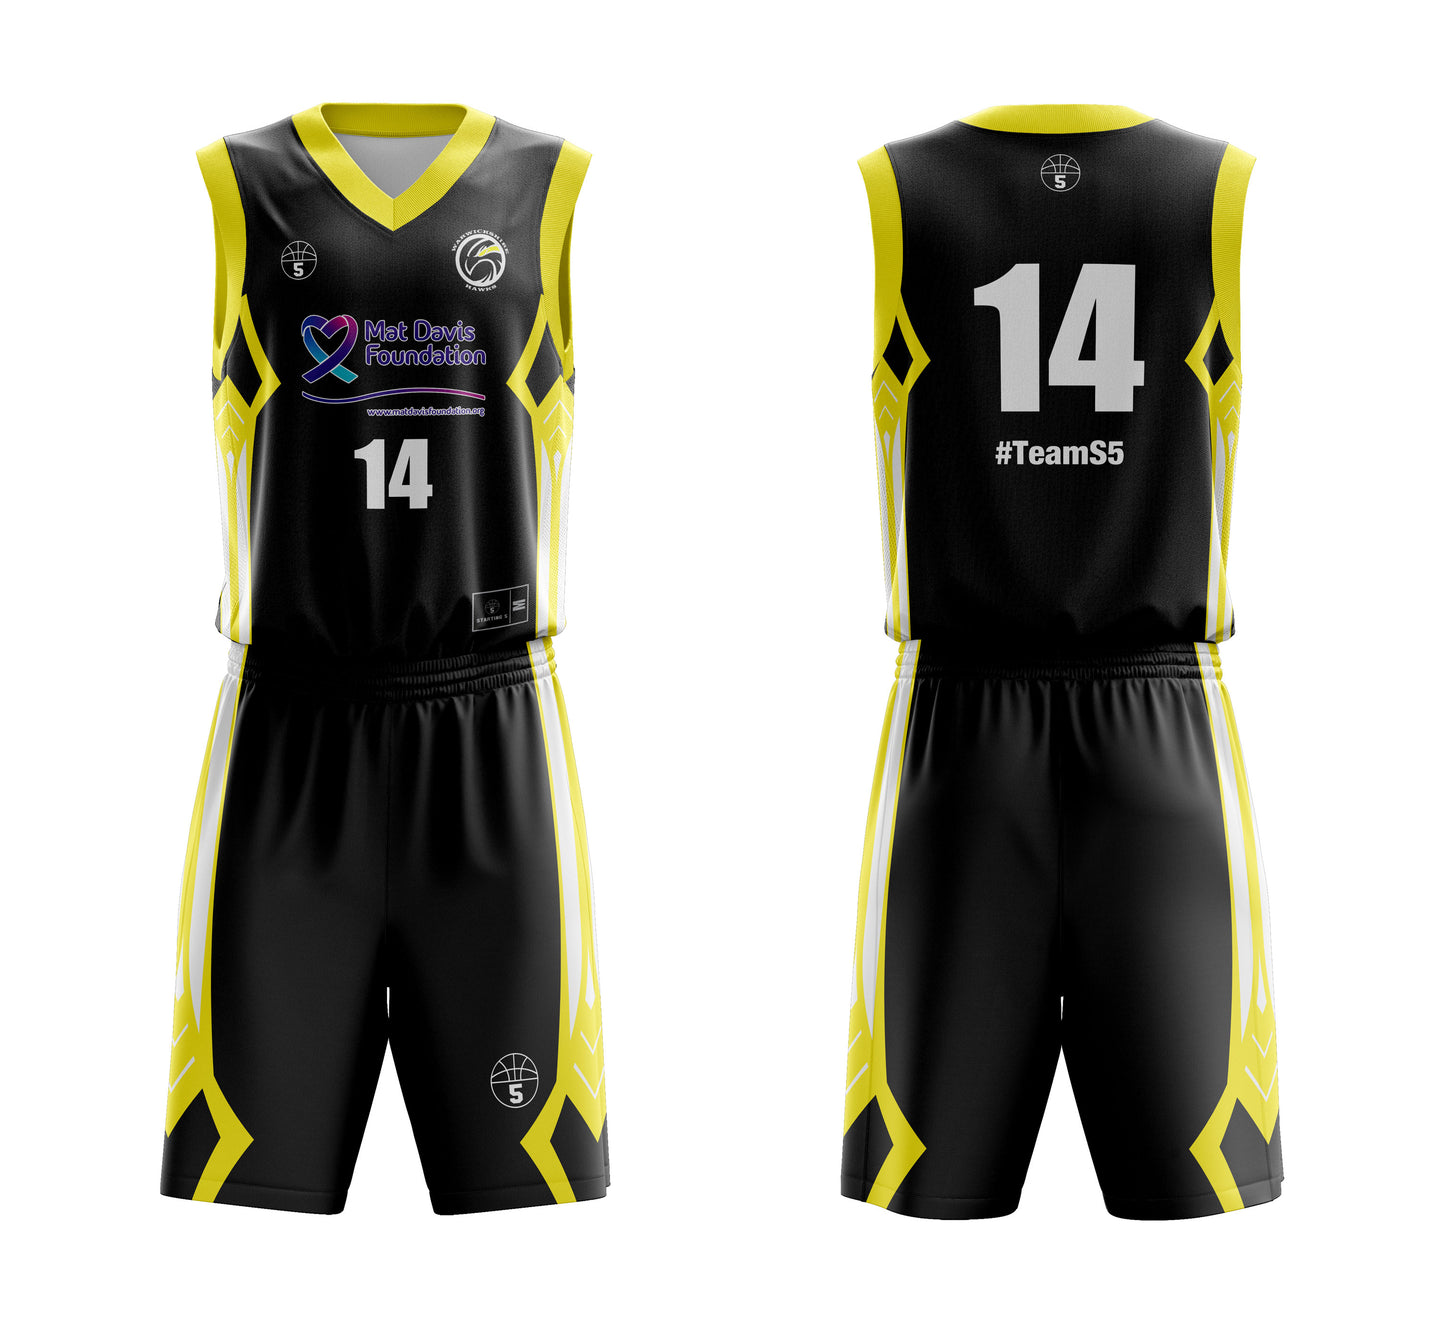 STARTING 5 Sublimated Basketball Kit Single-Sided Example 8